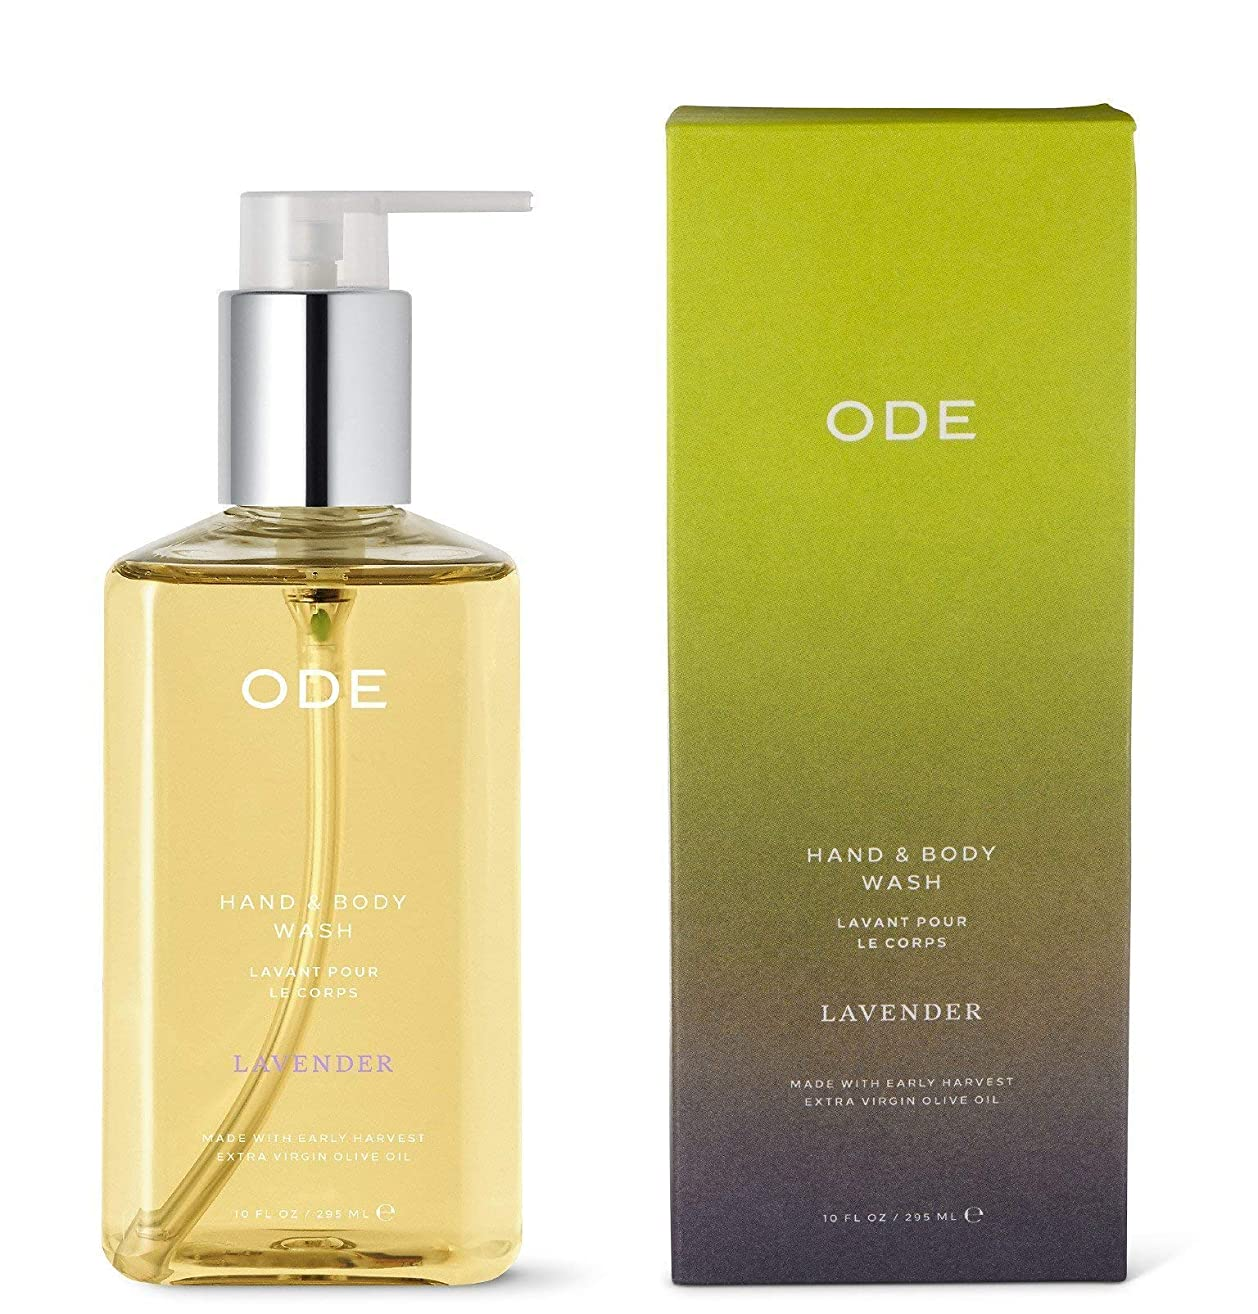 ODE natural beauty - Lavender Hand & Body Wash